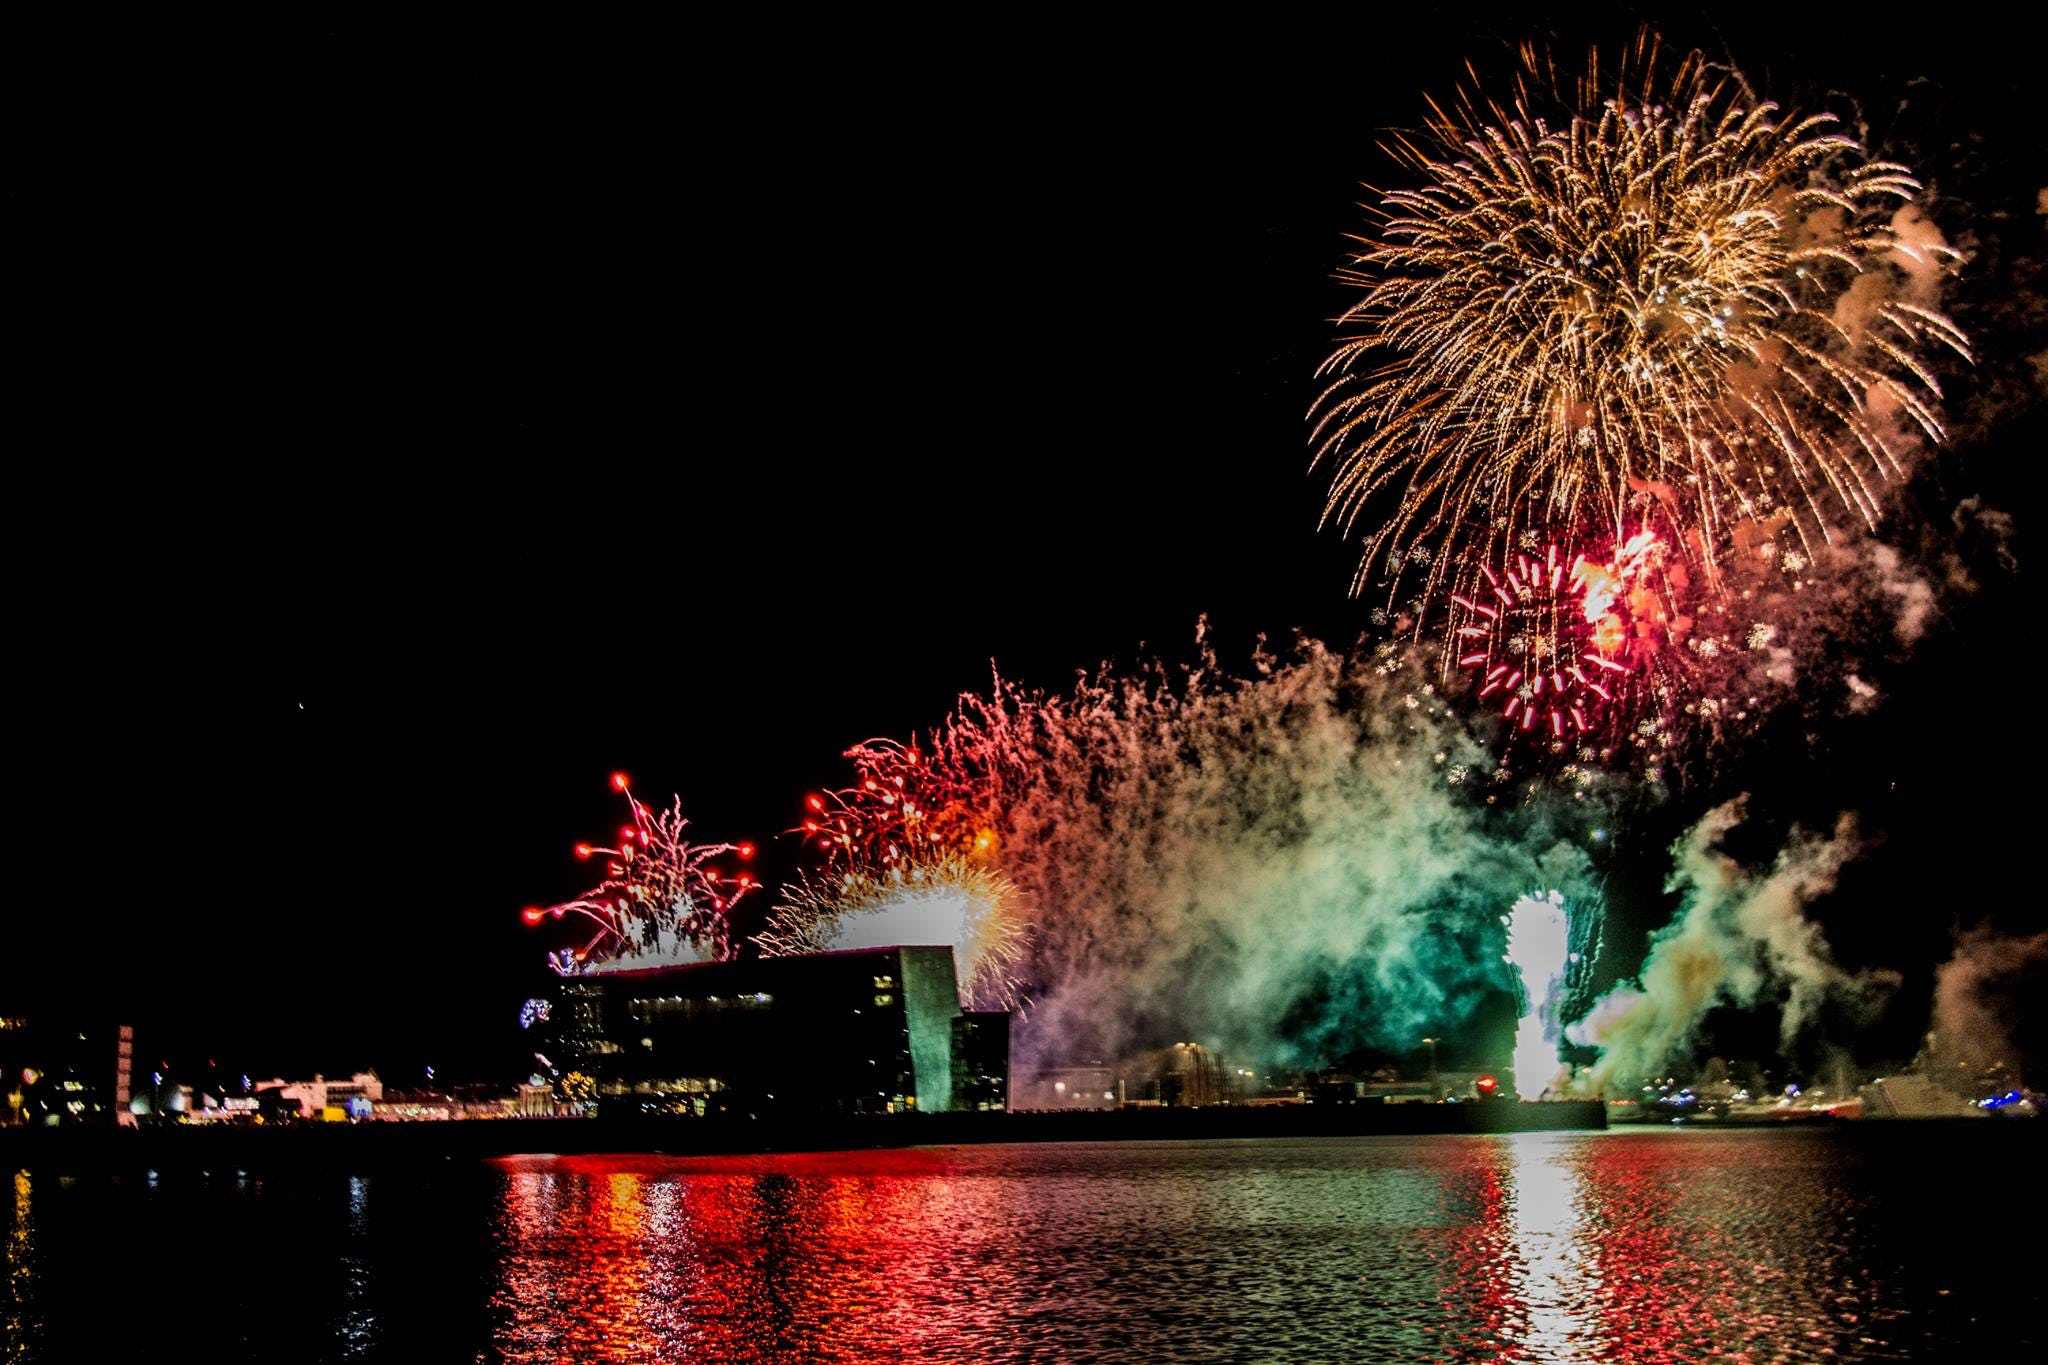 Fireworks during New Year's in Iceland casting their lights on Harpa Concert Hall.